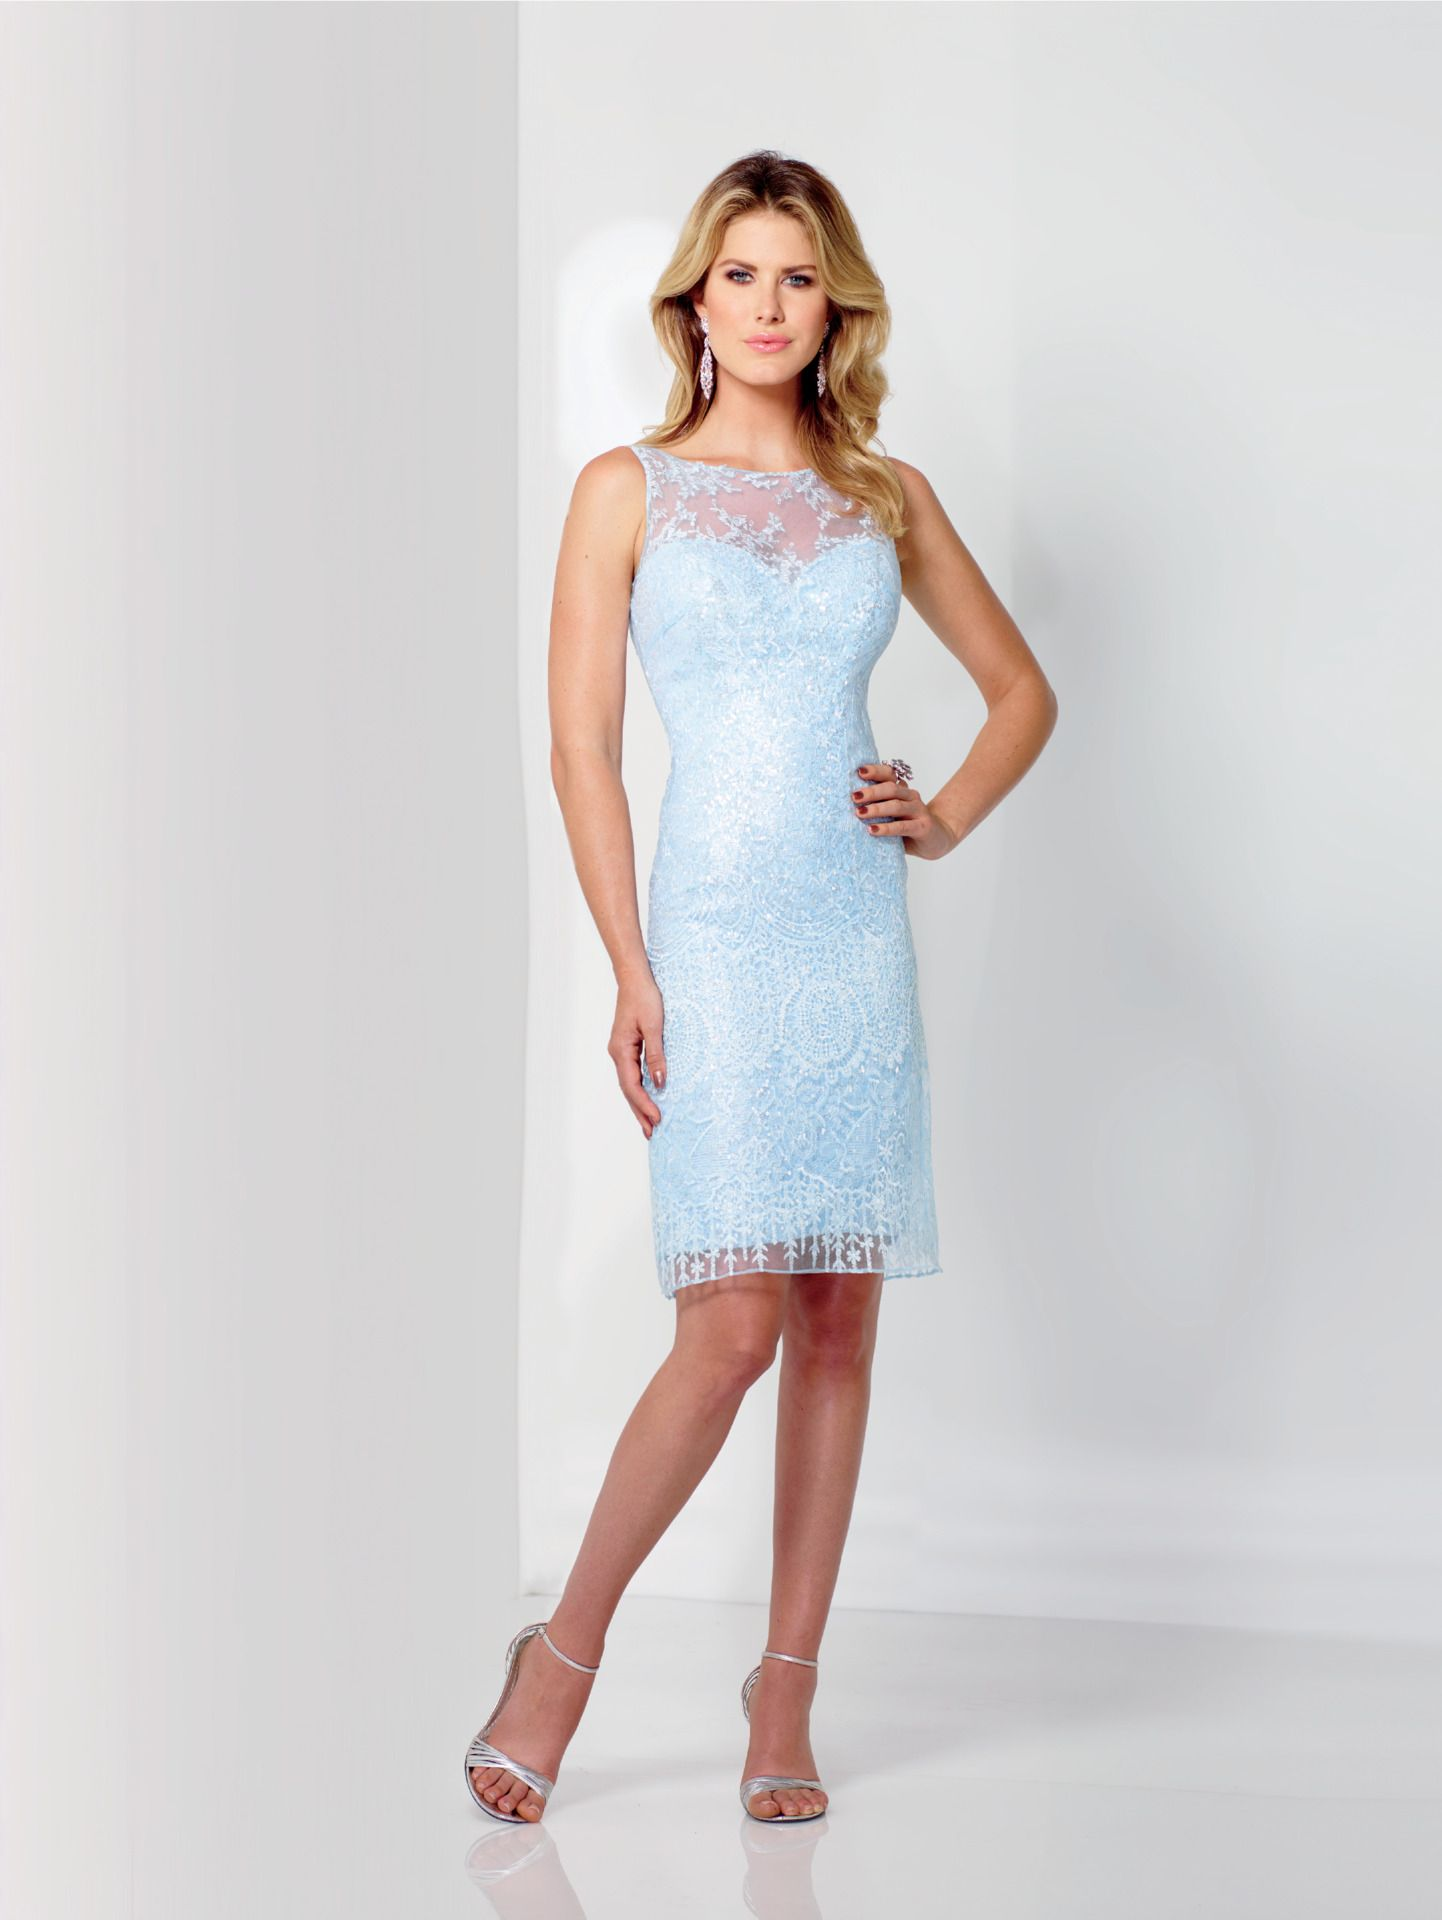 bfde580622f6 Social Occasions by Mon Cheri Style 116850 available at WhatchamaCallit  Boutique.